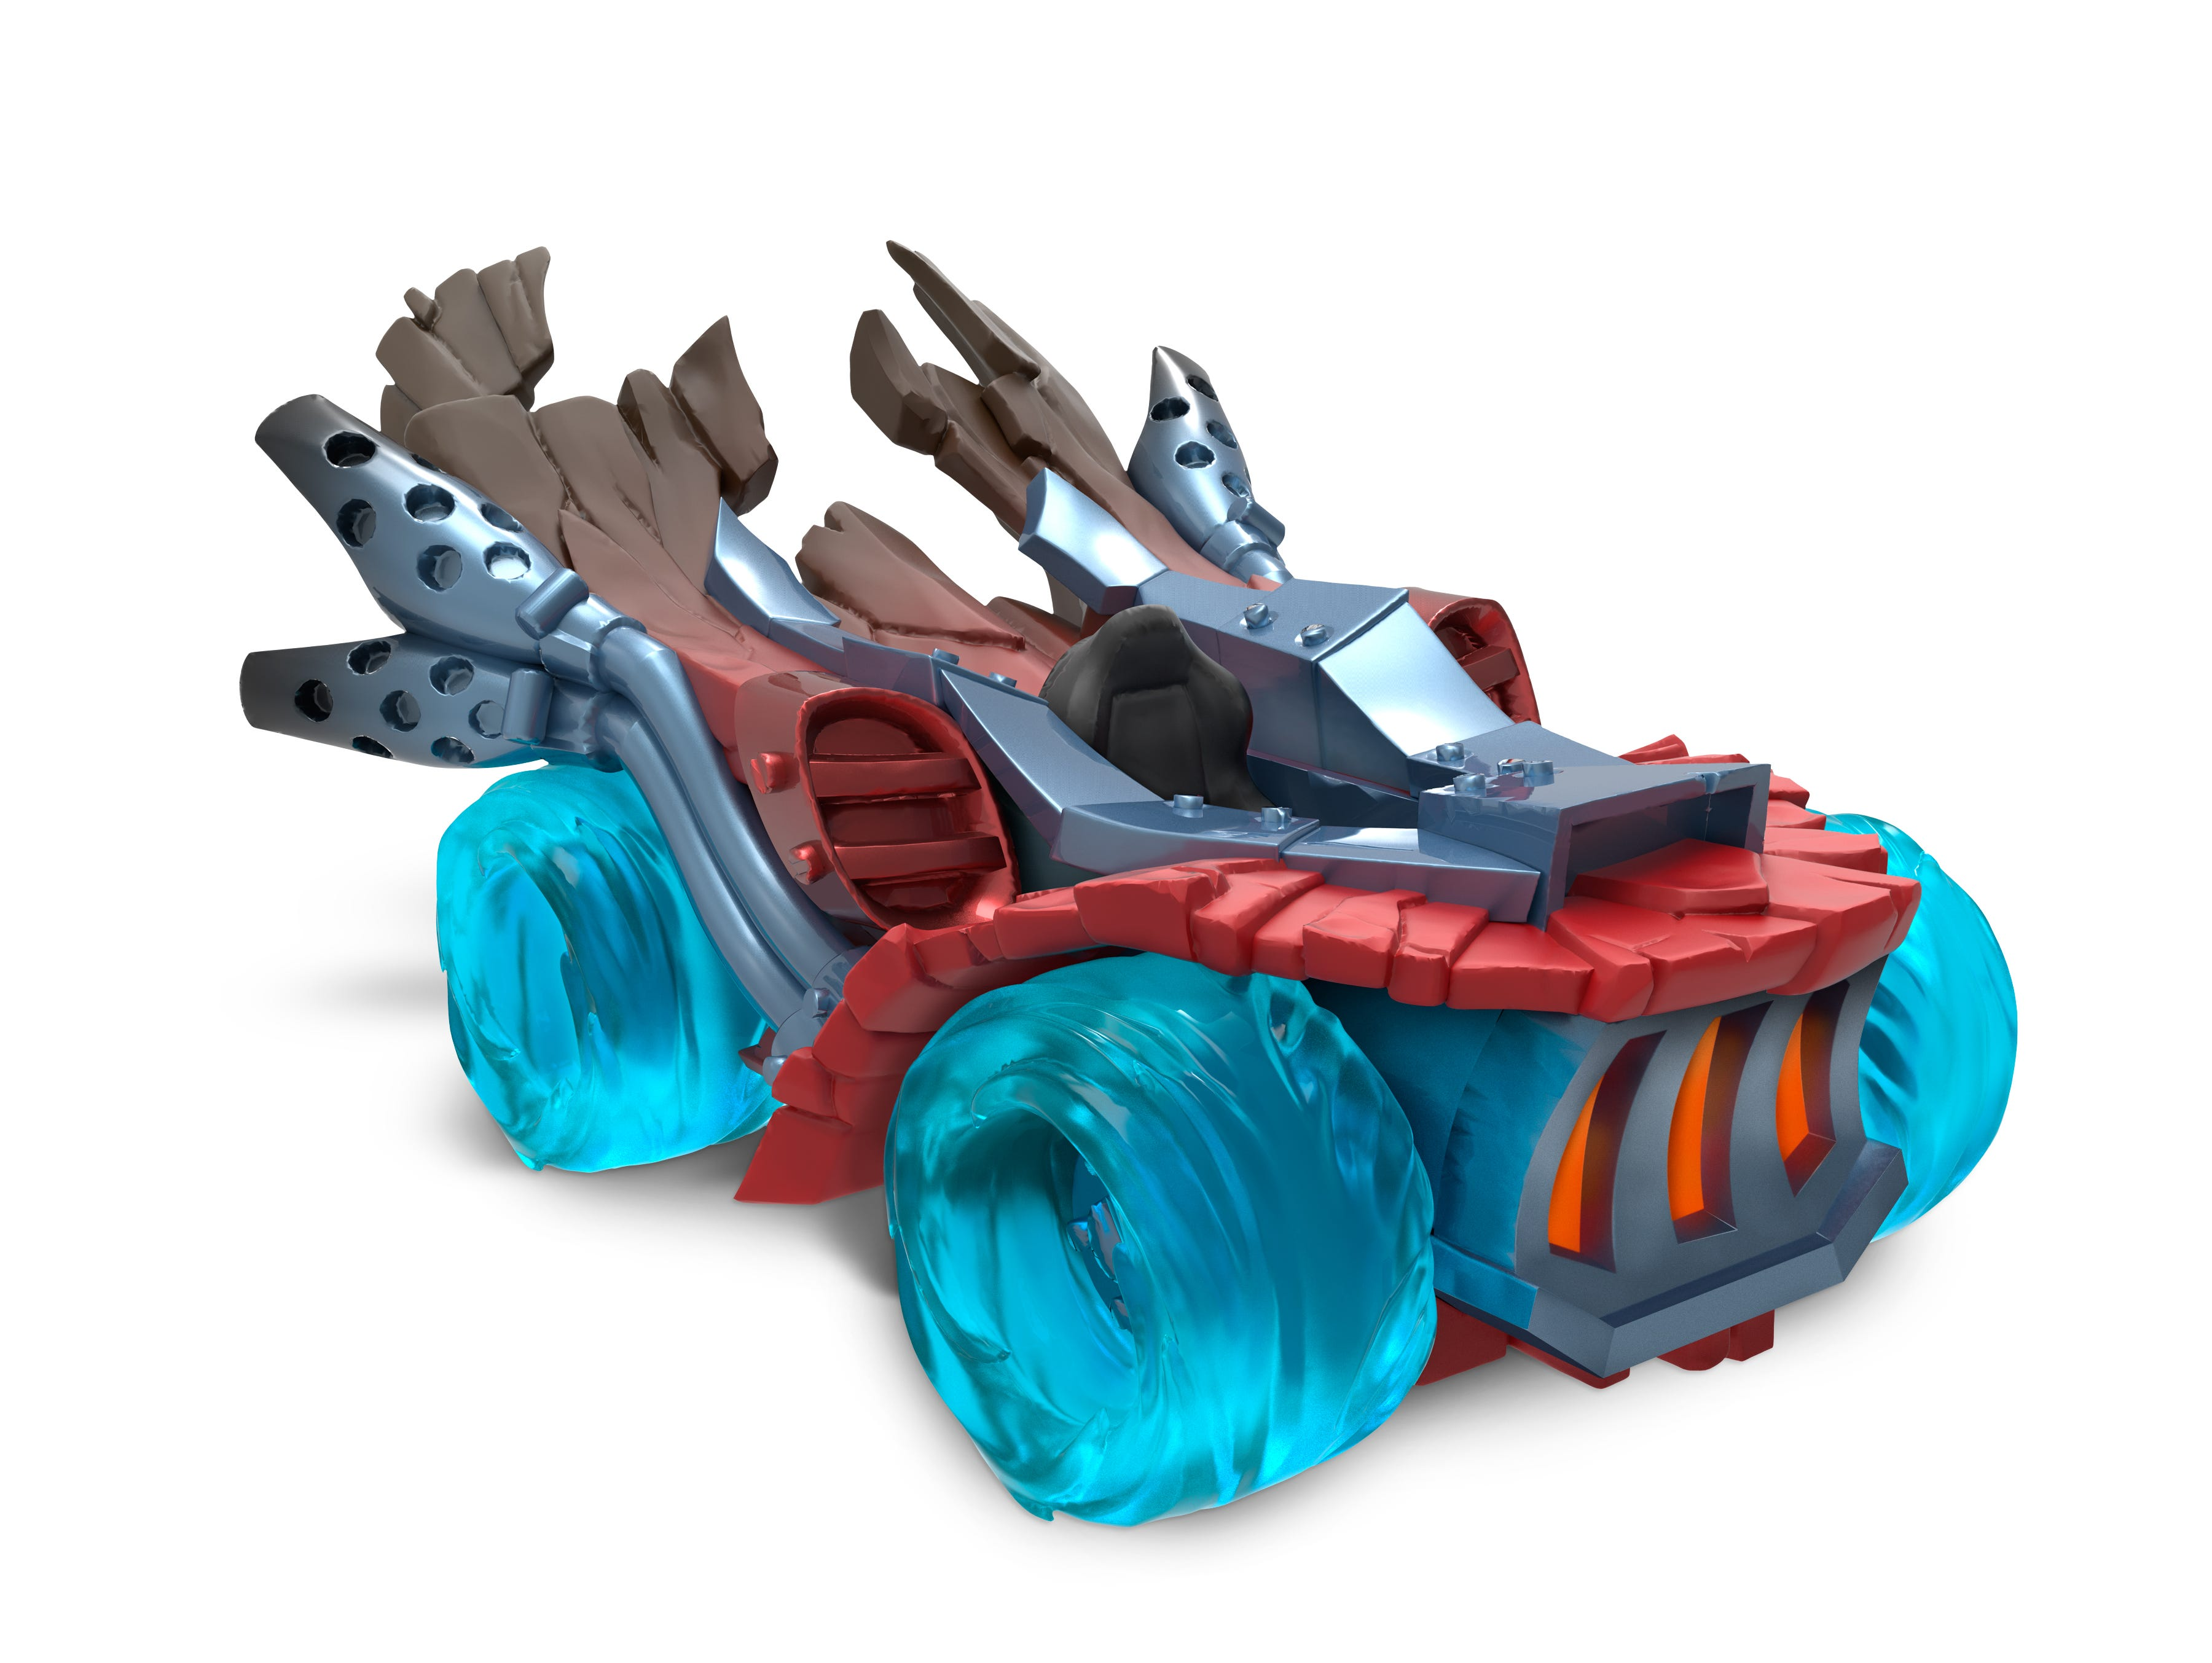 A picture of the race car Spitfire from the upcoming video game 'Skylanders SuperChargers.'